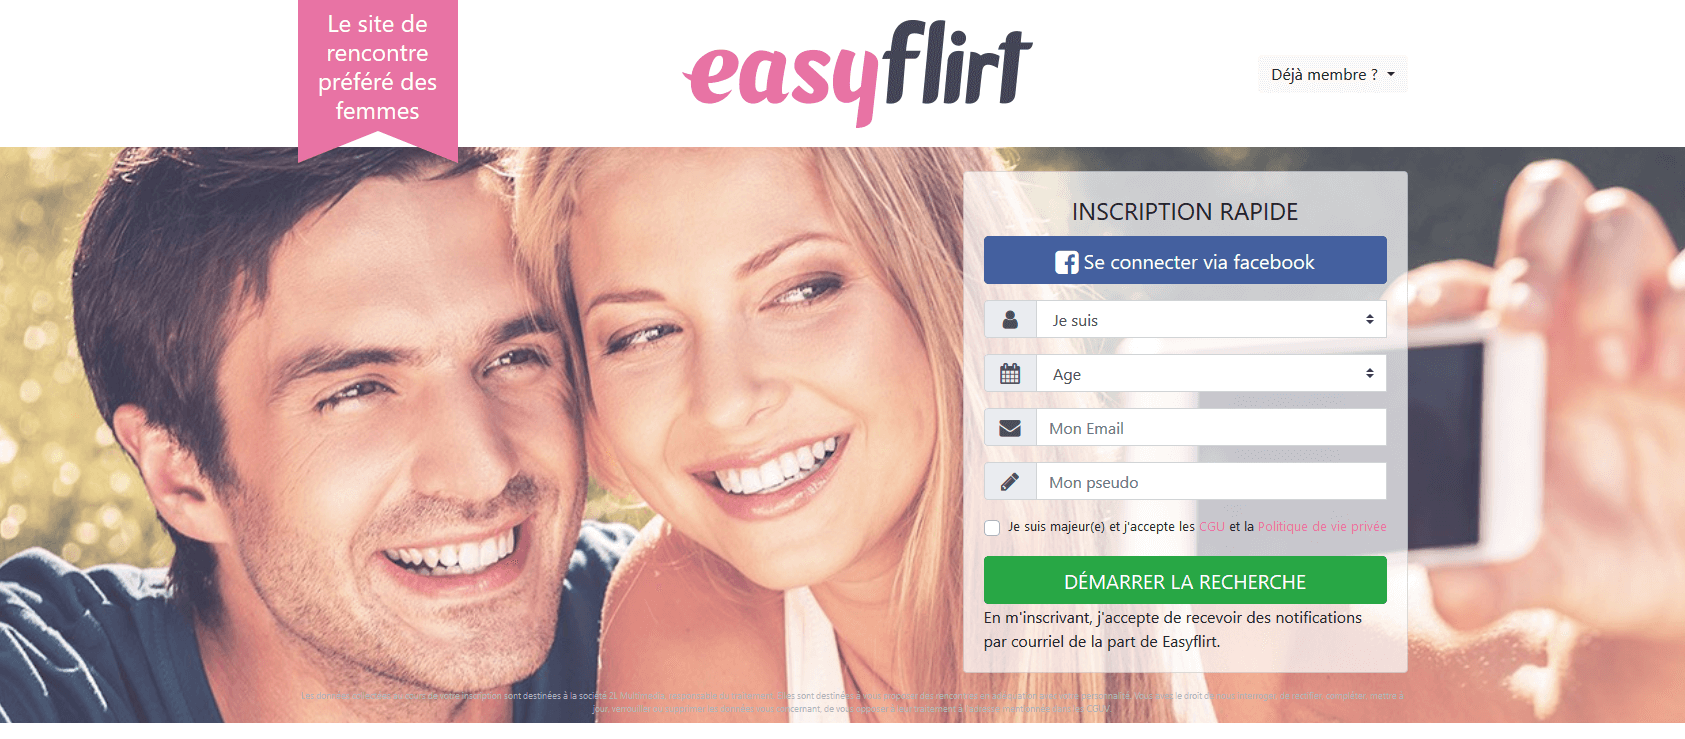 easyflirt page accueil